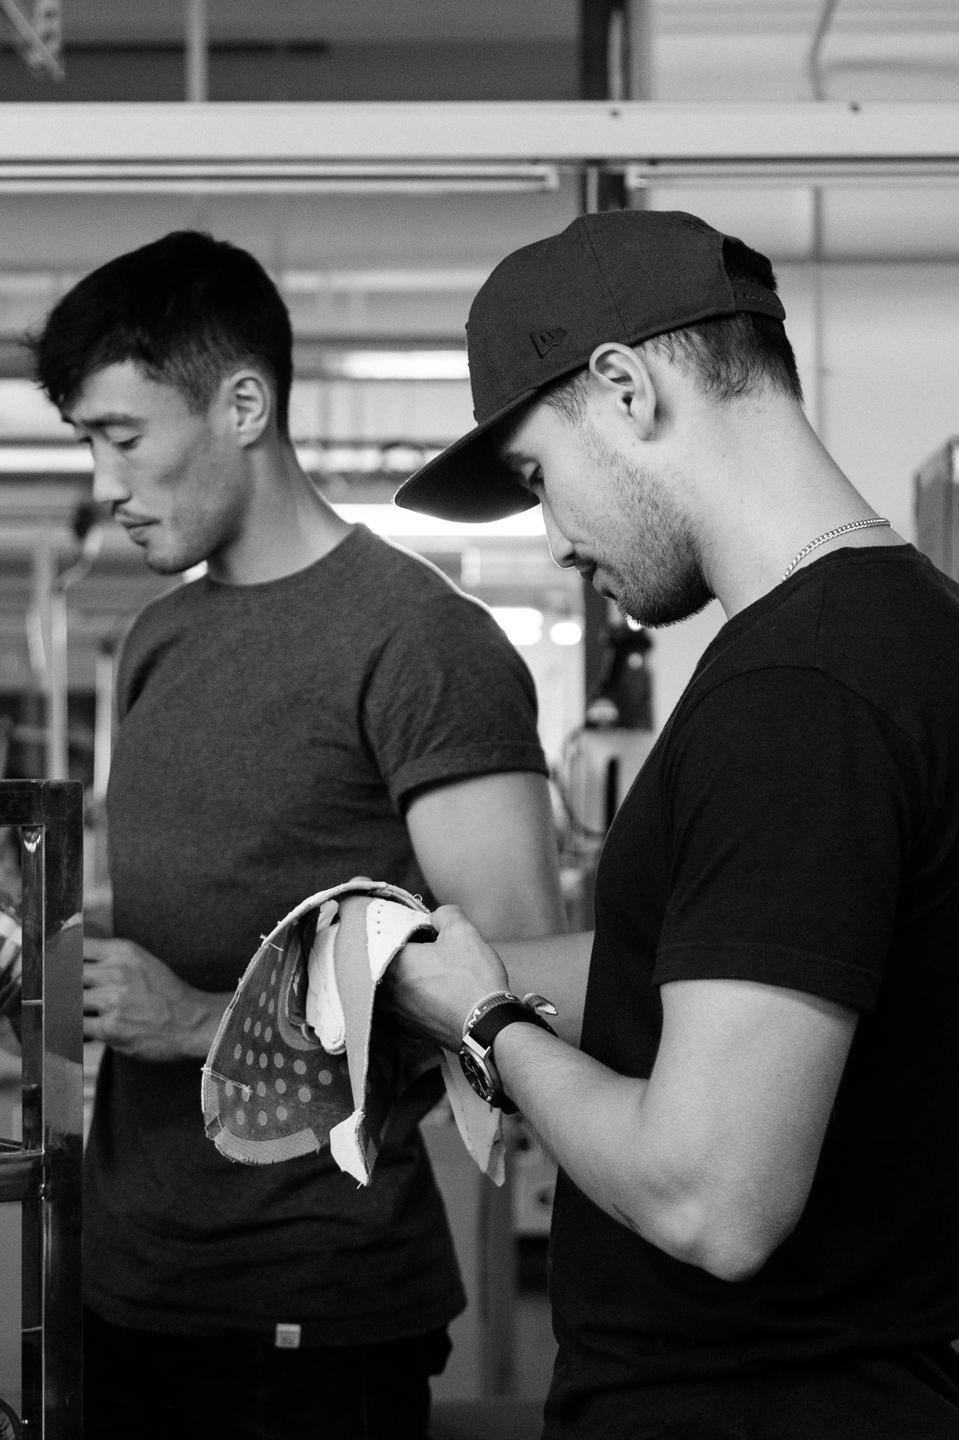 Brothers Josh (L) and James (R) Shorrock co-founded Lane Eight, heralding from Adidas and Hypebeast backgrounds.